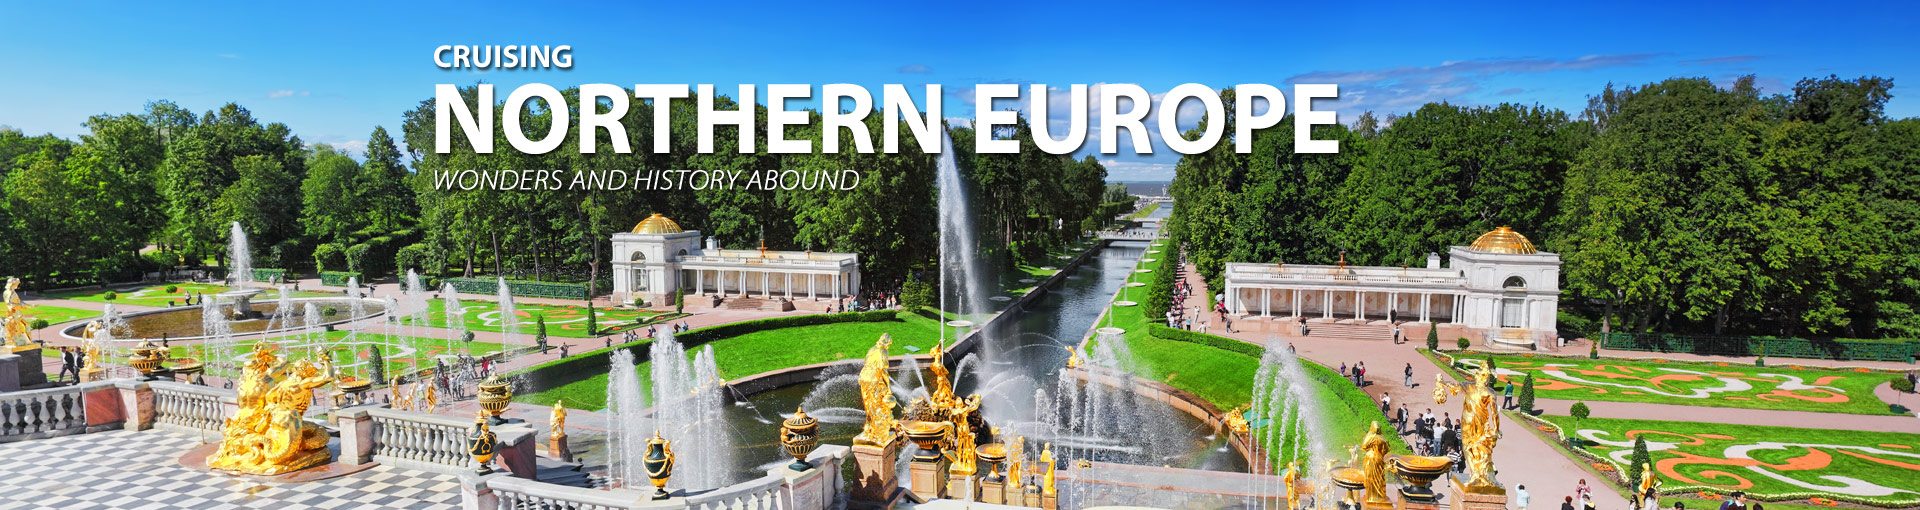 Immerse in culture on your Northern Europe cruise